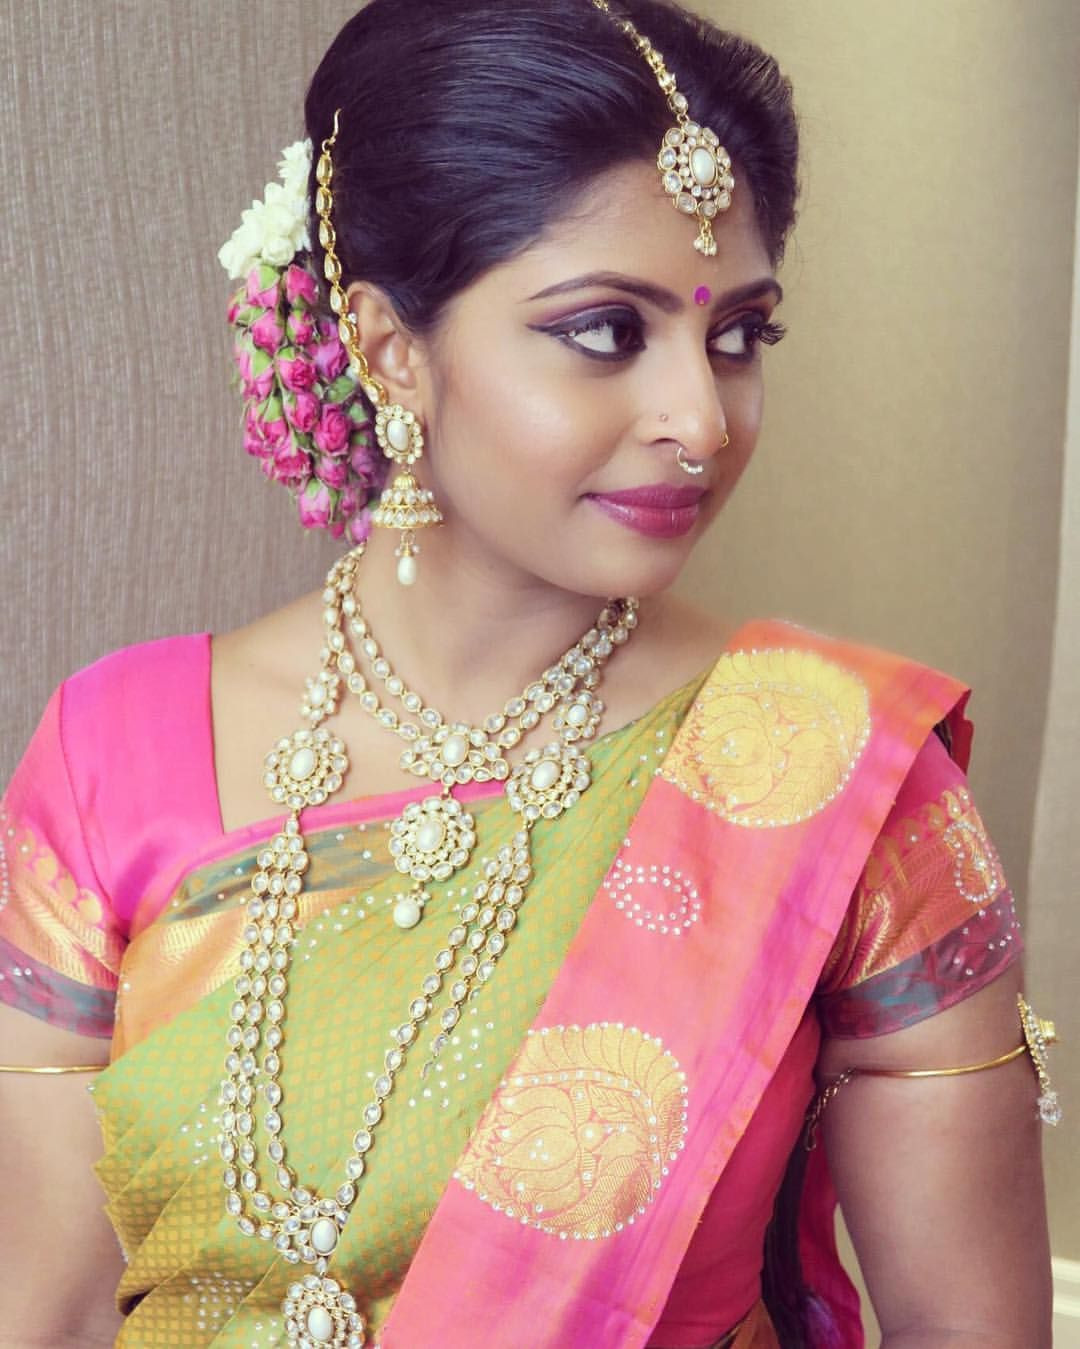 Hairstyles For Brides Mother Kerala Style: South Indian Bride. Gold Indian Bridal Jewelry.Temple